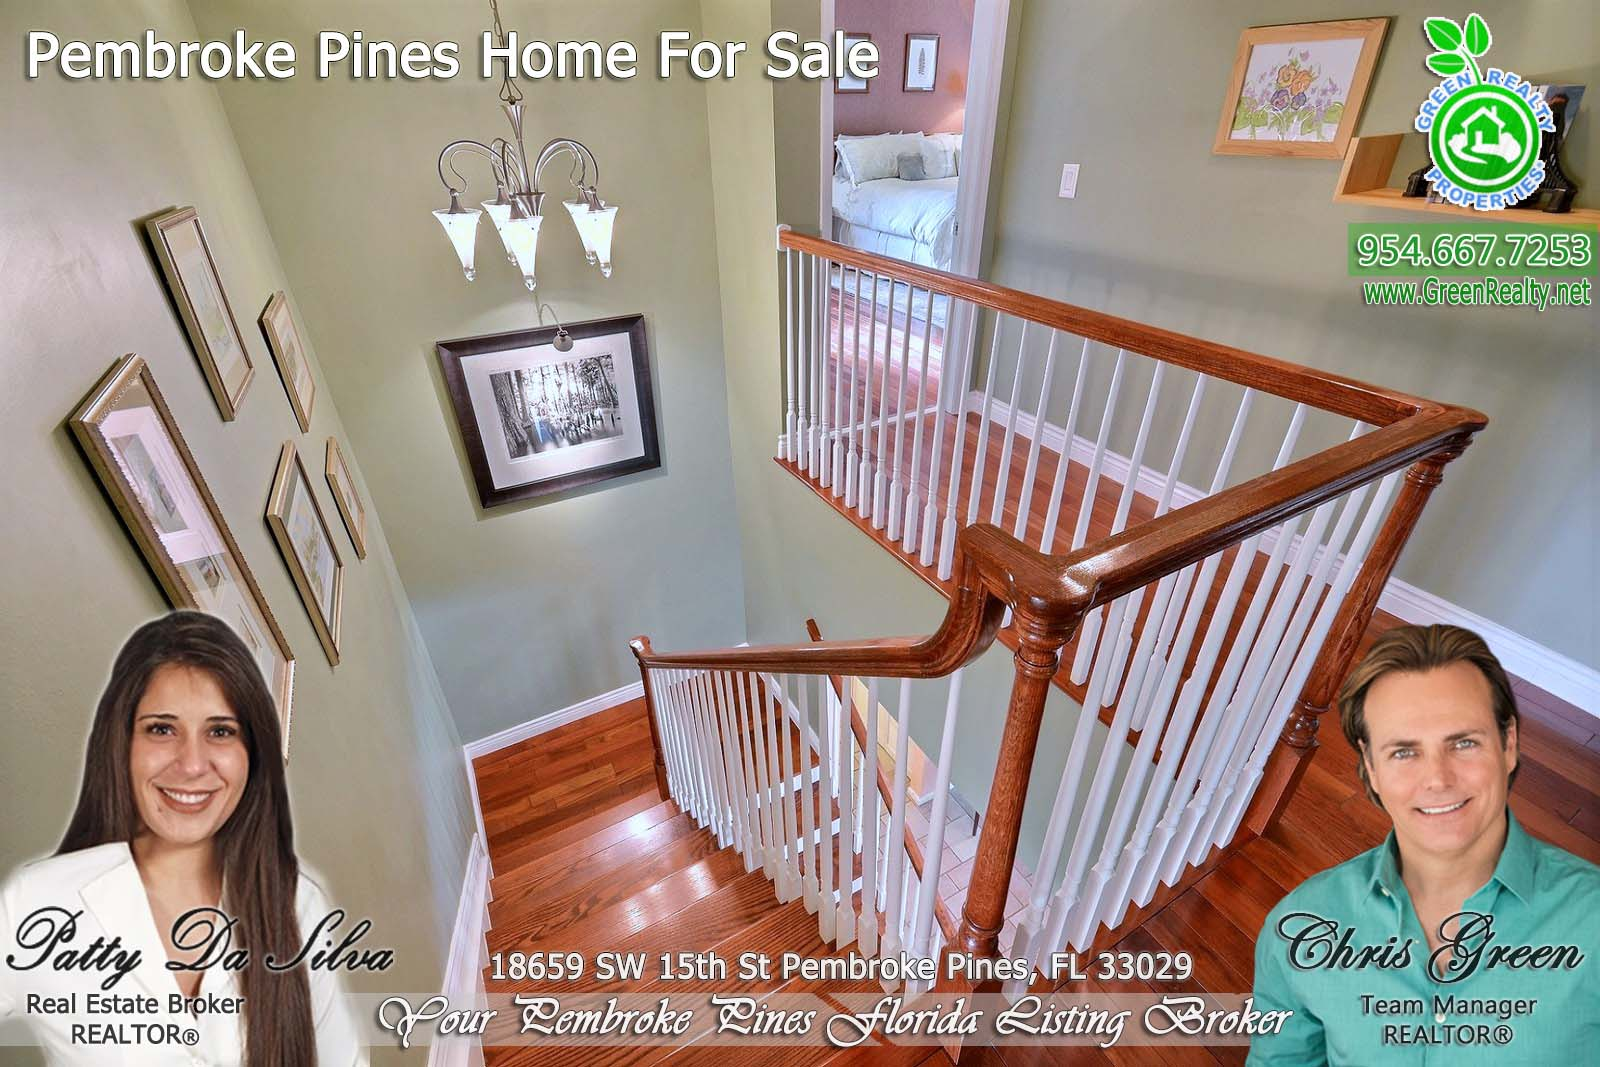 27 Pembroke Pines Homes (2)